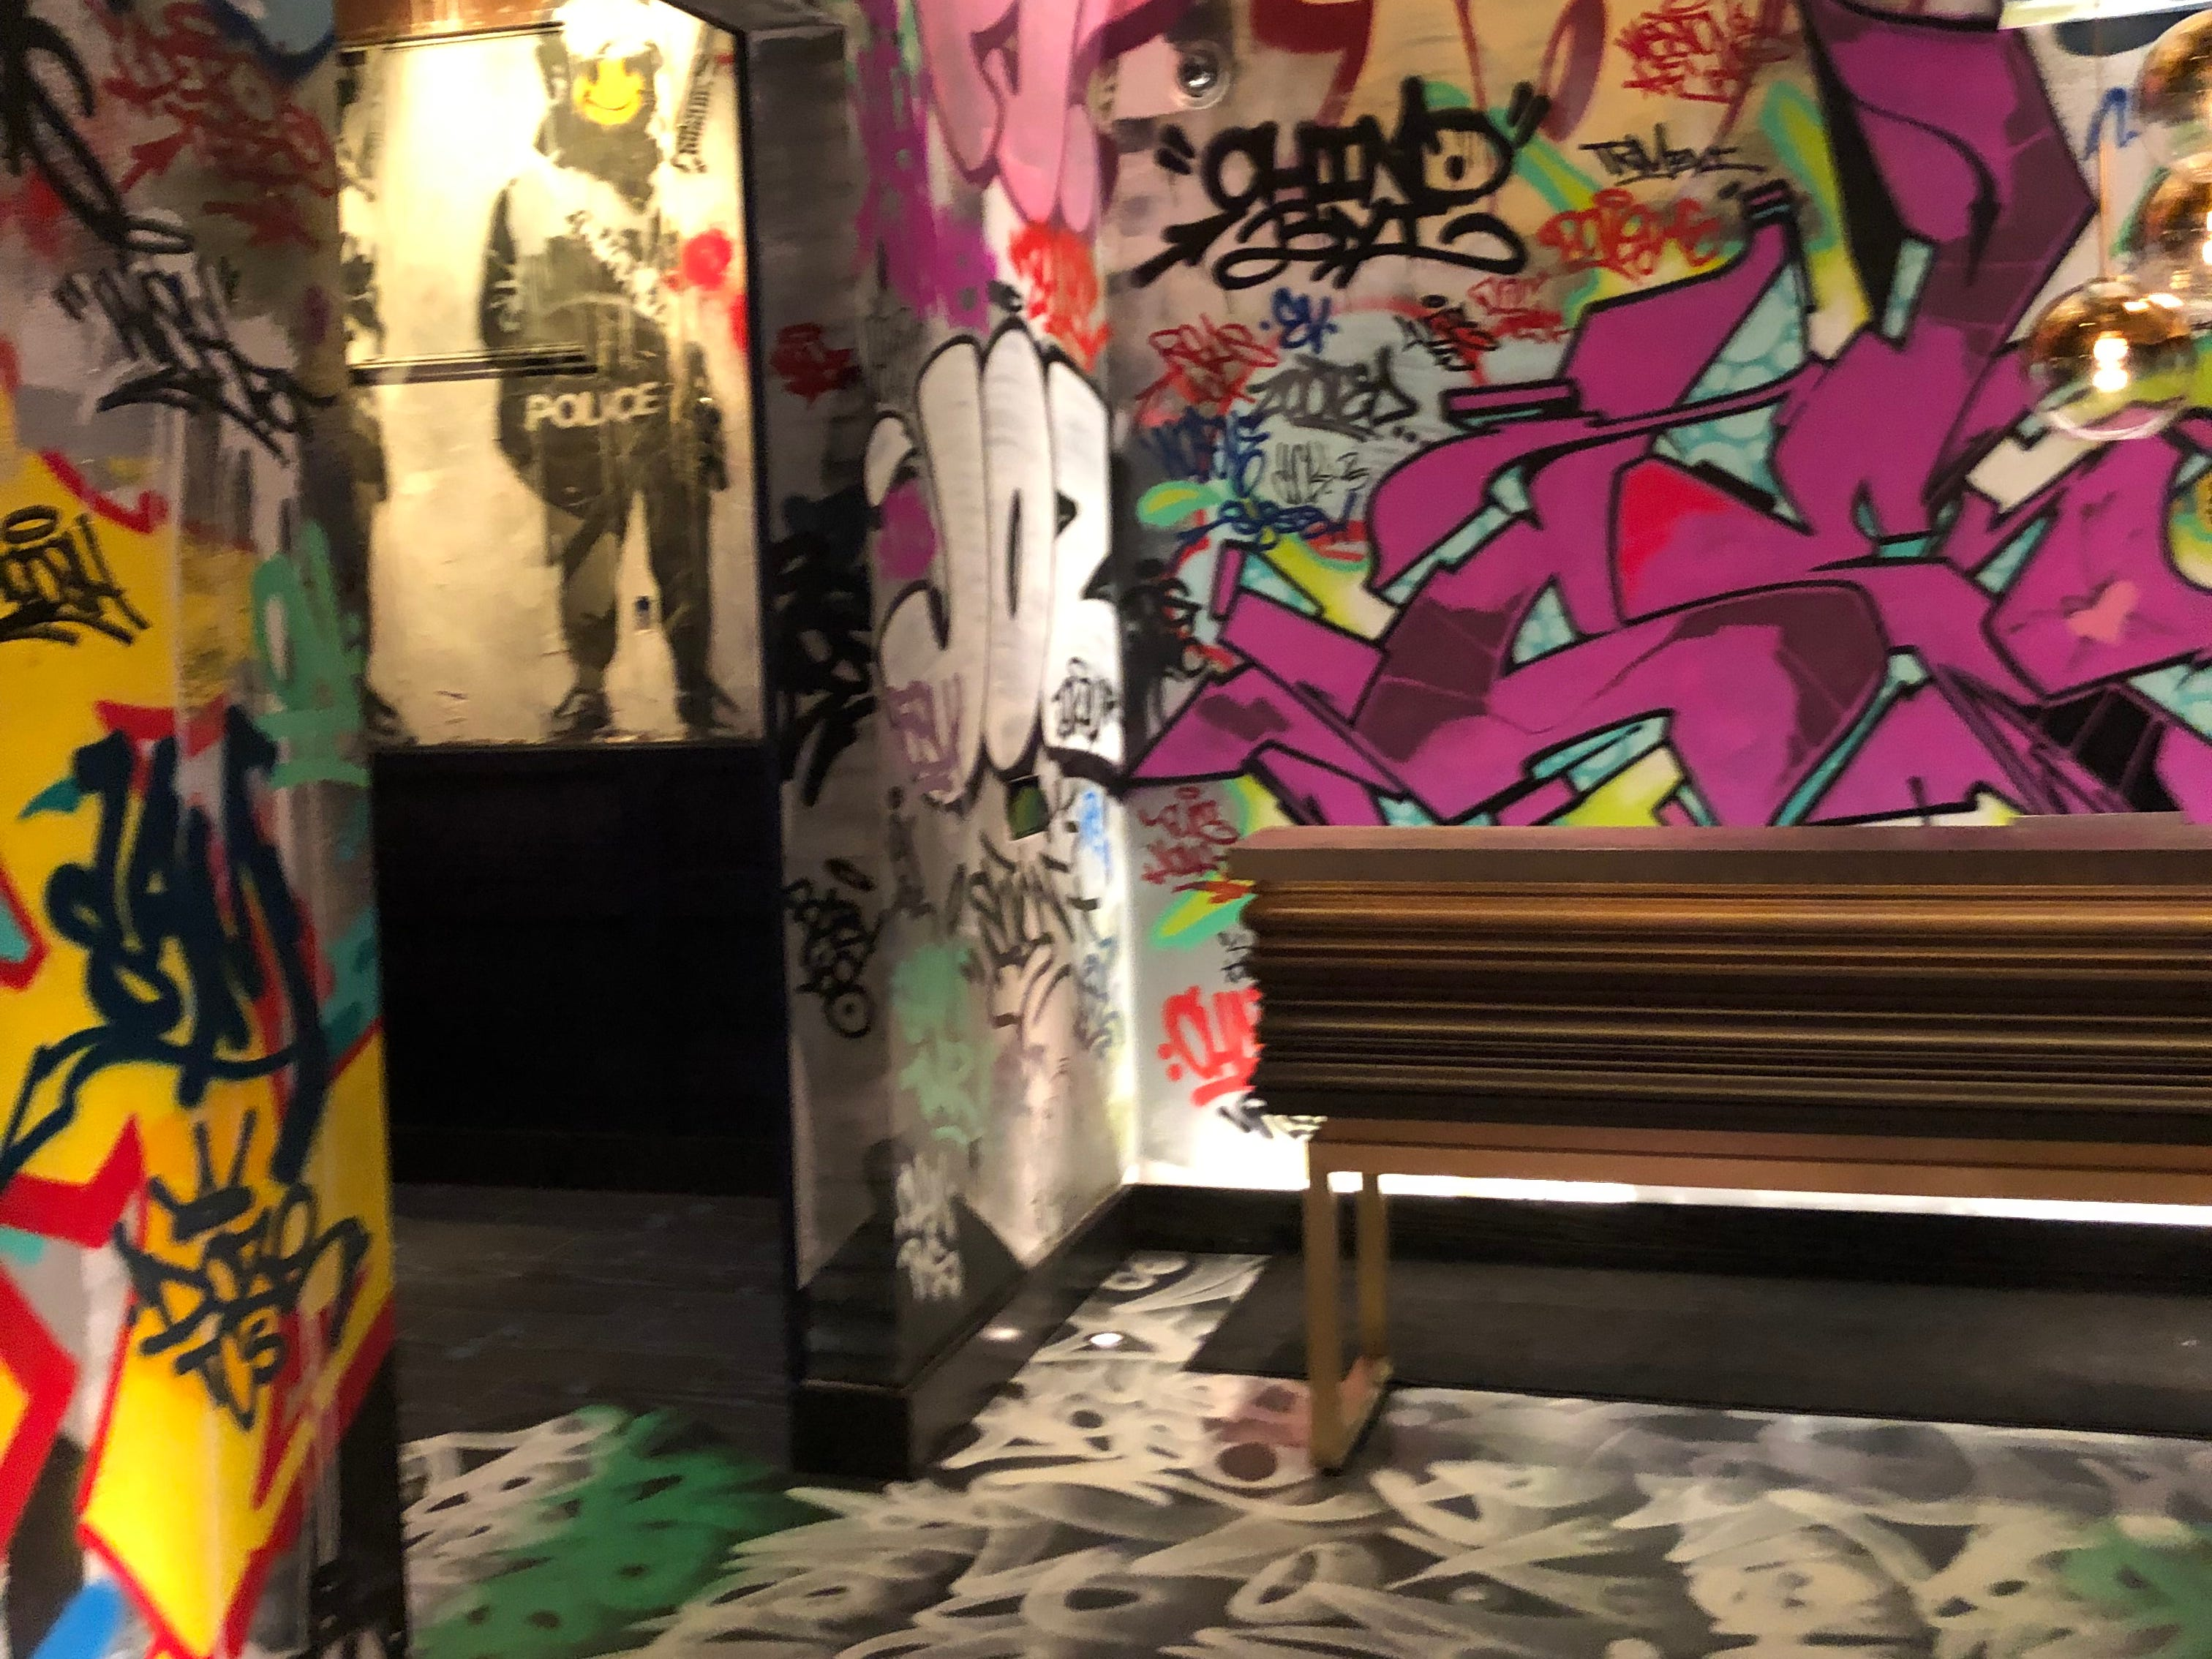 Graffiti entryway into Greene St. Kitchen in the Palms Casino Resort in Las Vegas. Just inside the door to the left is the resort's Banksy artwork.